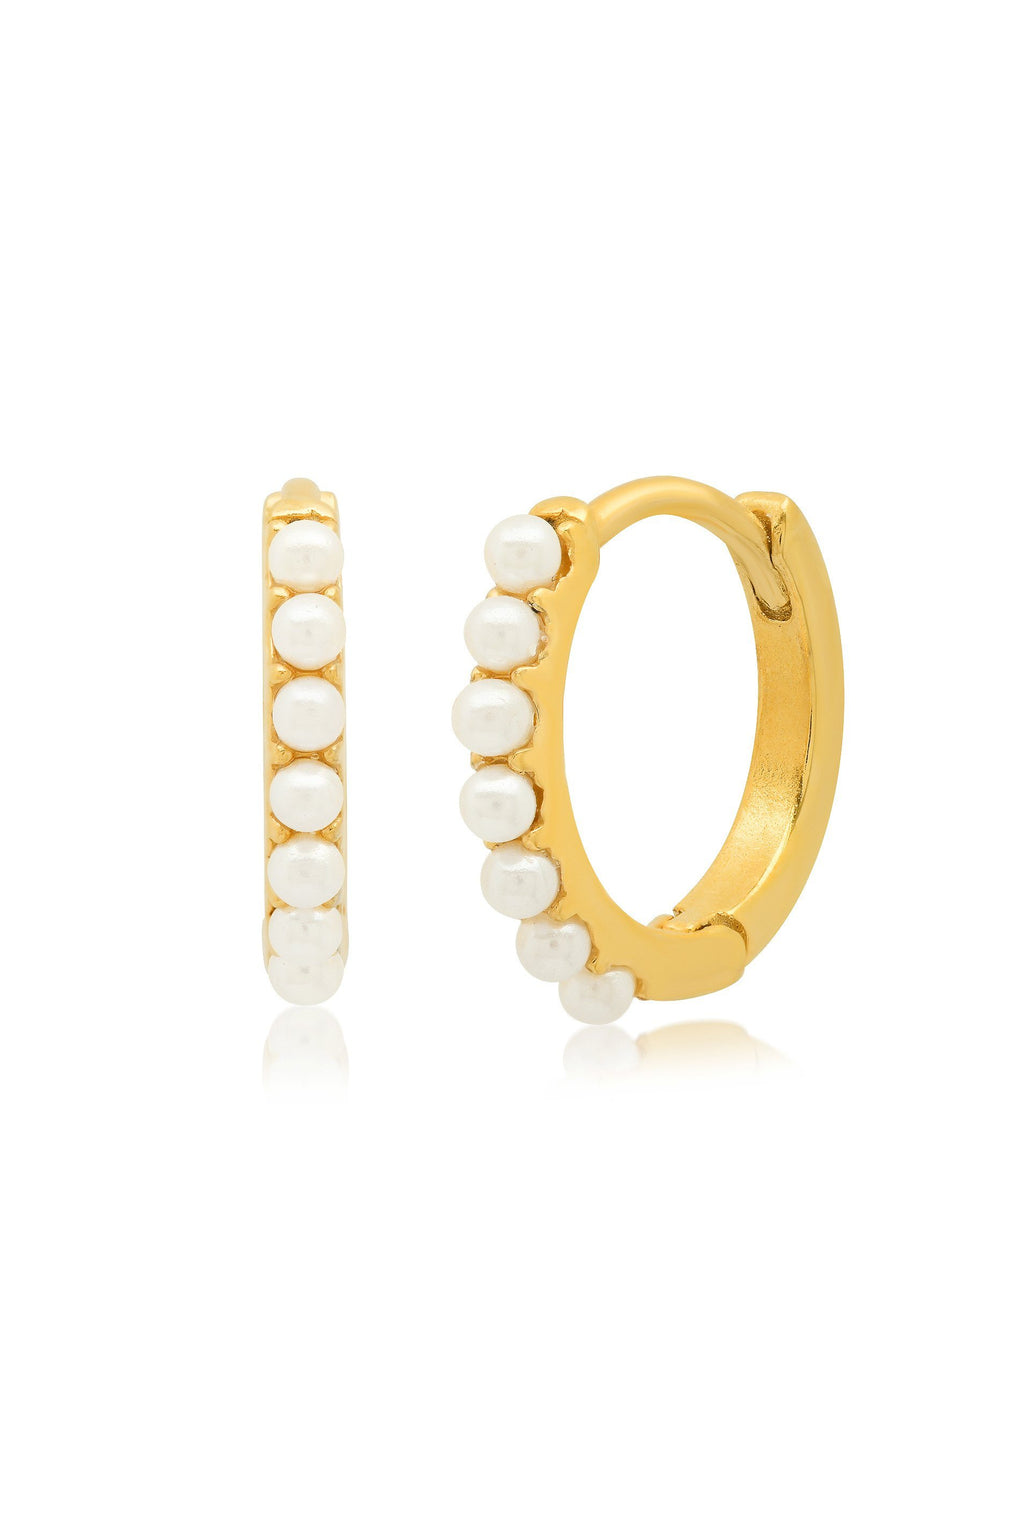 TAI | Gold Huggie + Pearl Accents